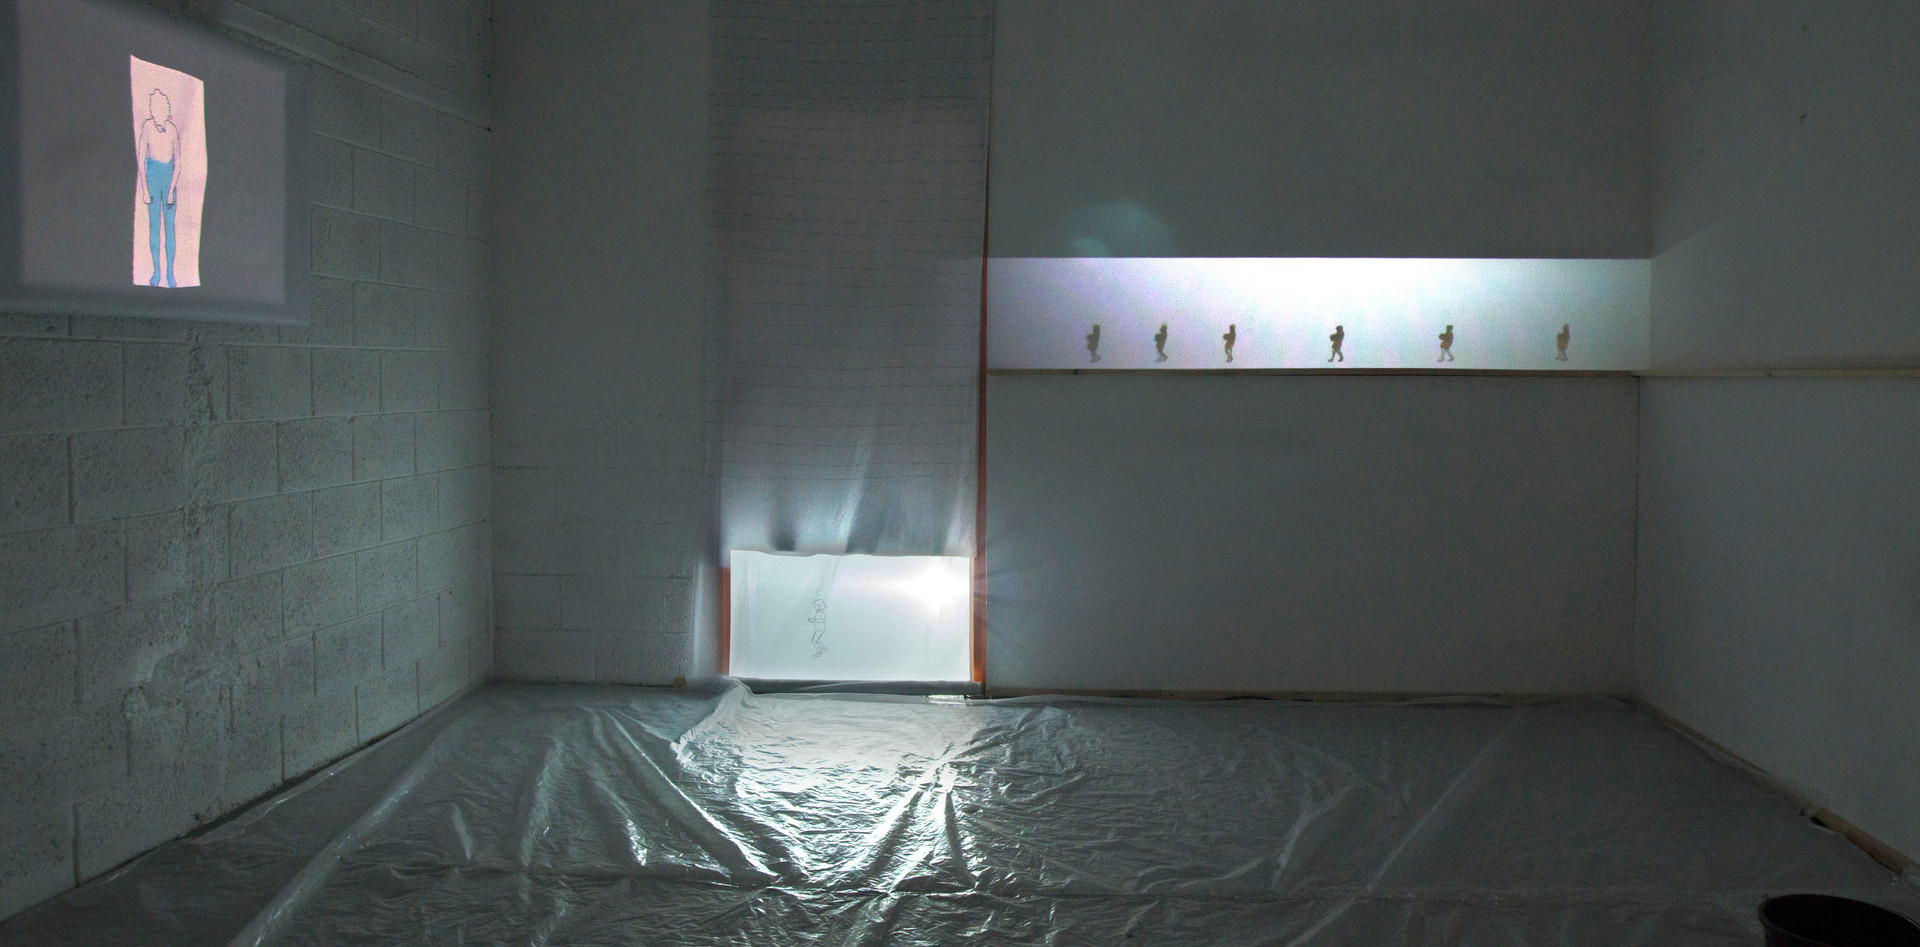 The video installation